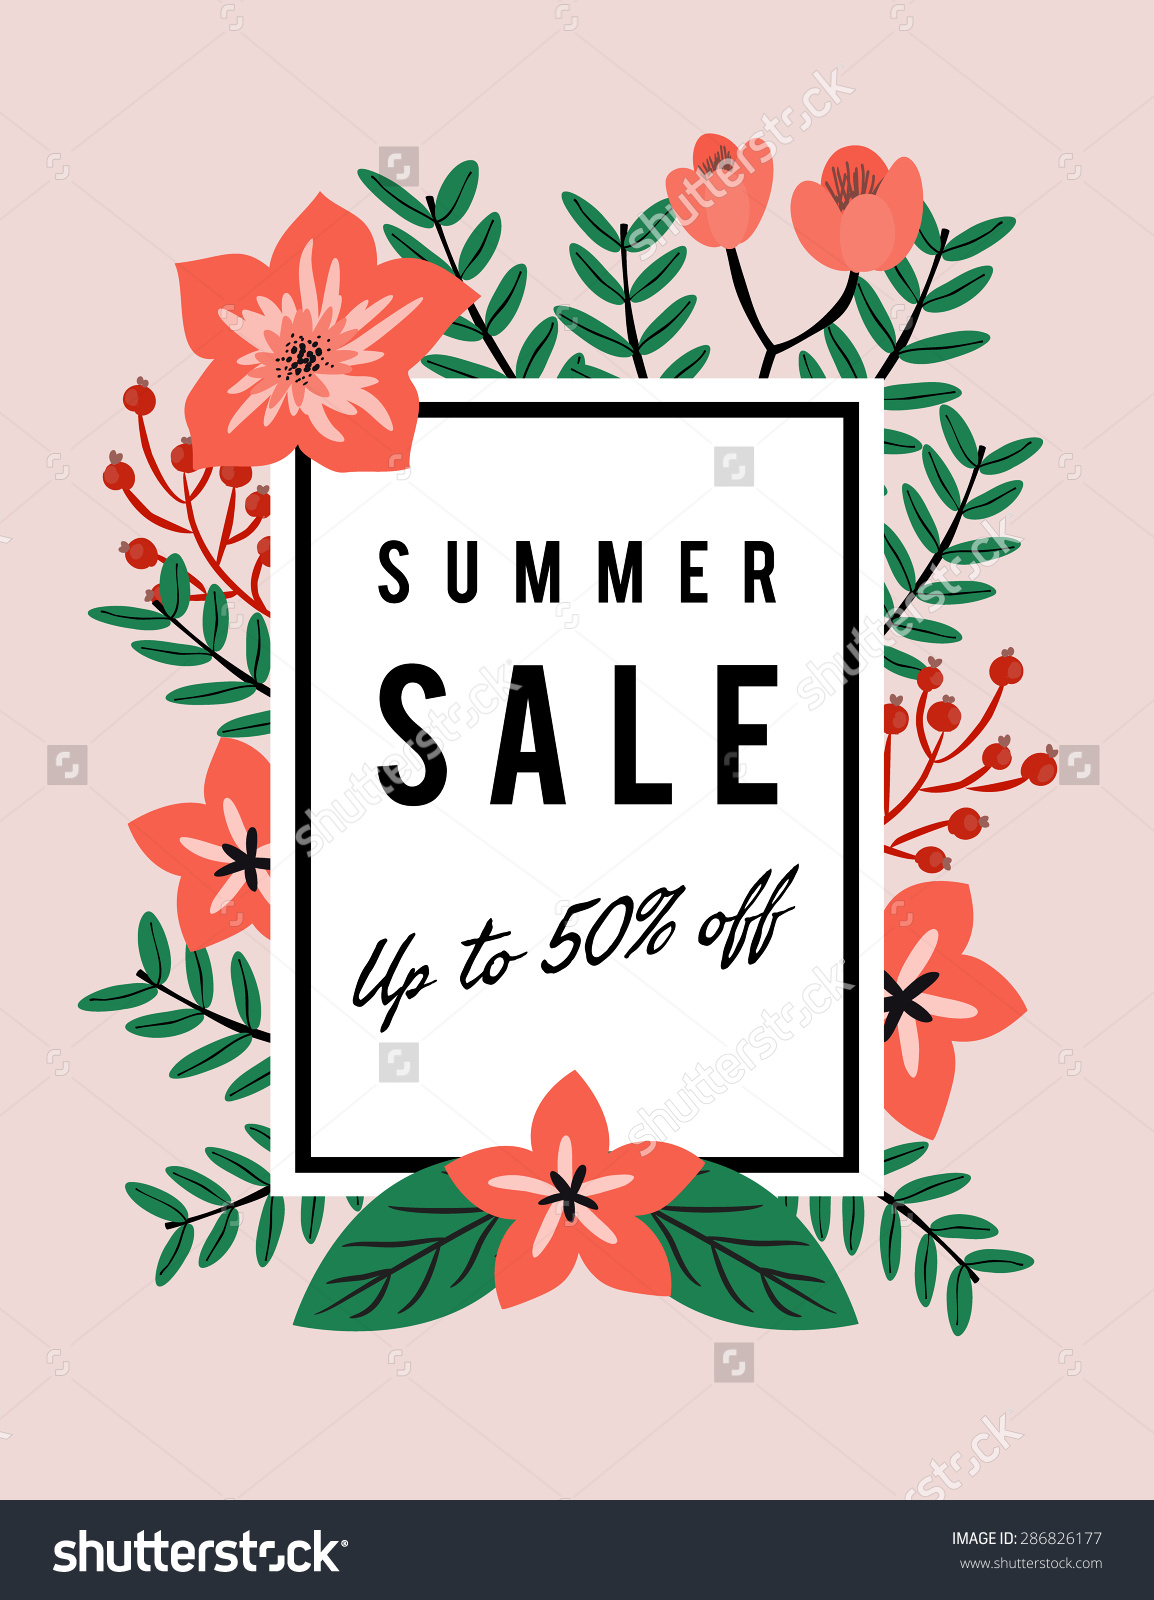 Summer Sale Discount Promotion Banner Template Stock Vector.